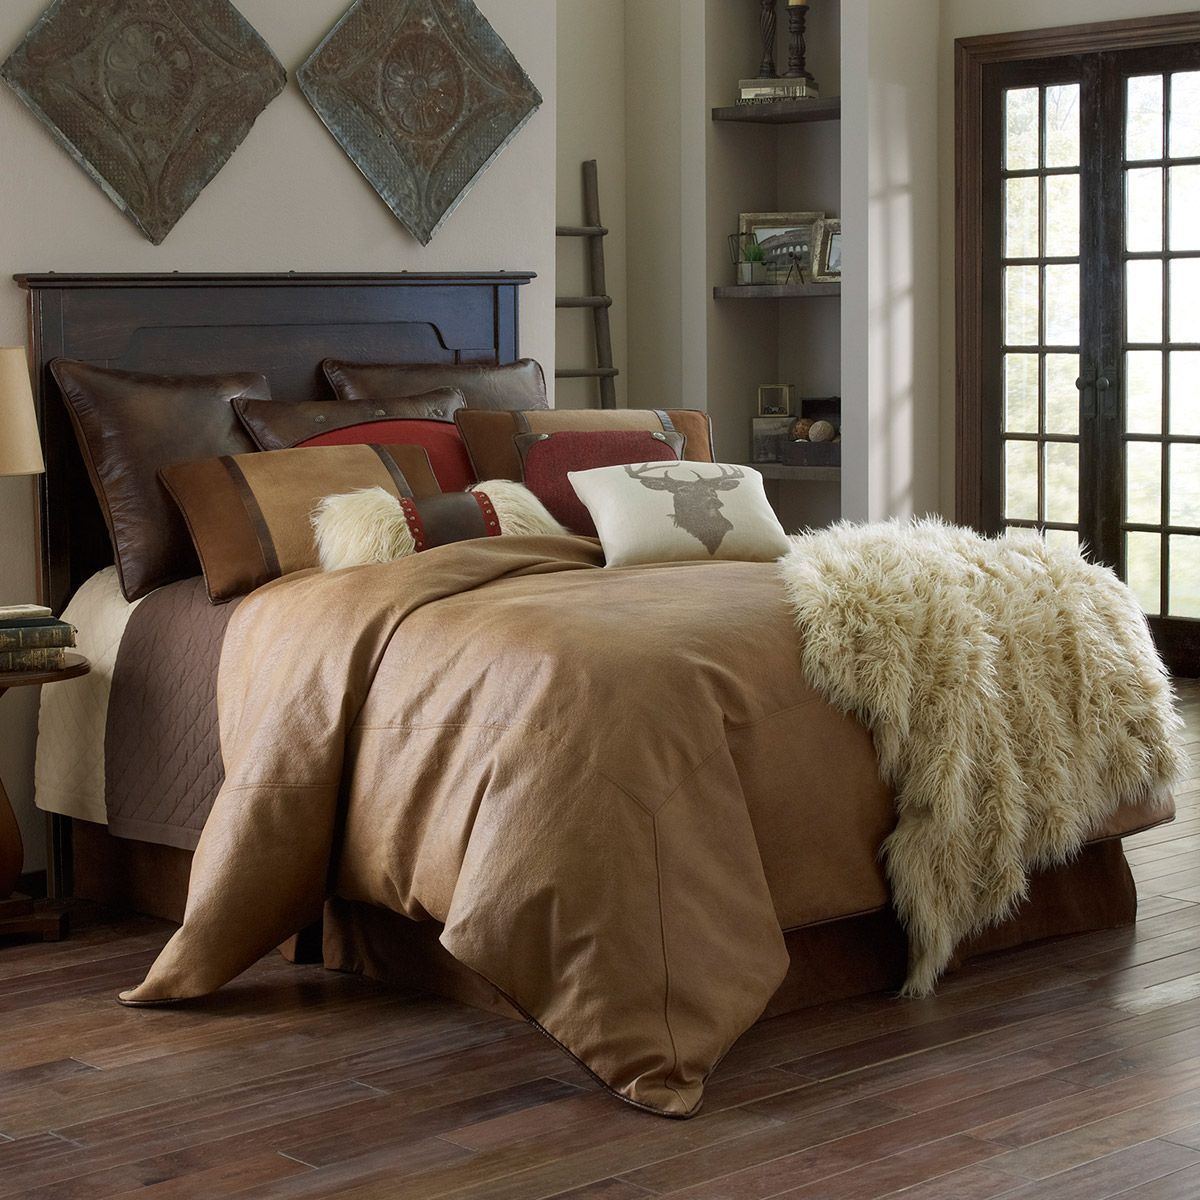 Sand Dune Comforter Set - Full - OUT OF STOCK UNTIL 1/5/2022